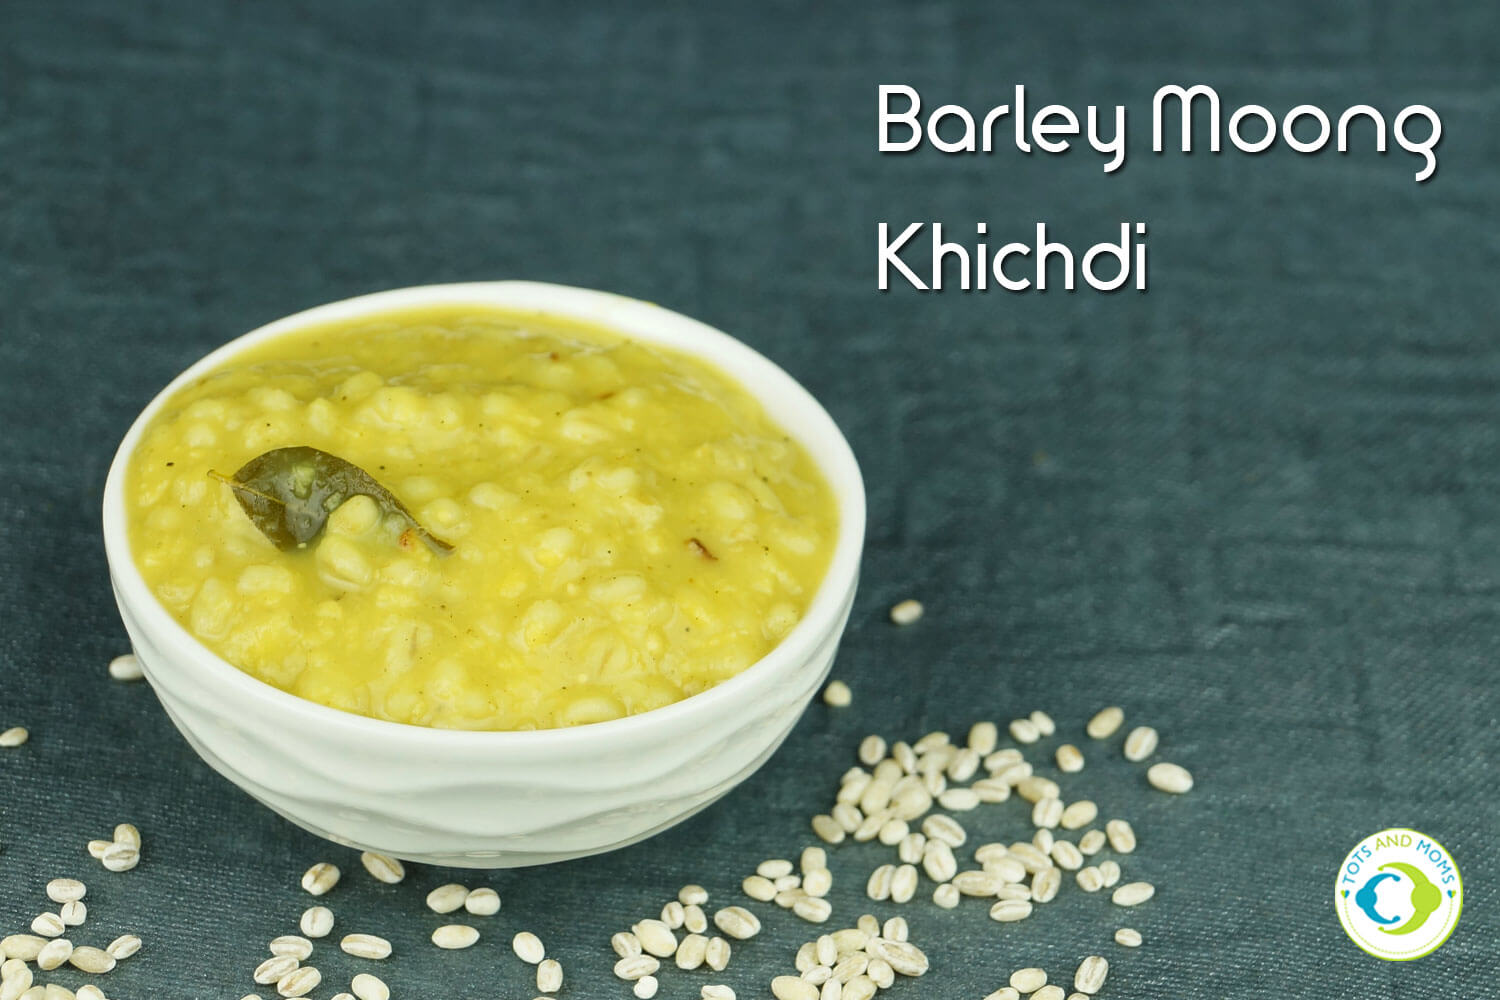 BARLEY MOONG KHICHDI for Babies, Toddlers, Kids & Family for breakfast